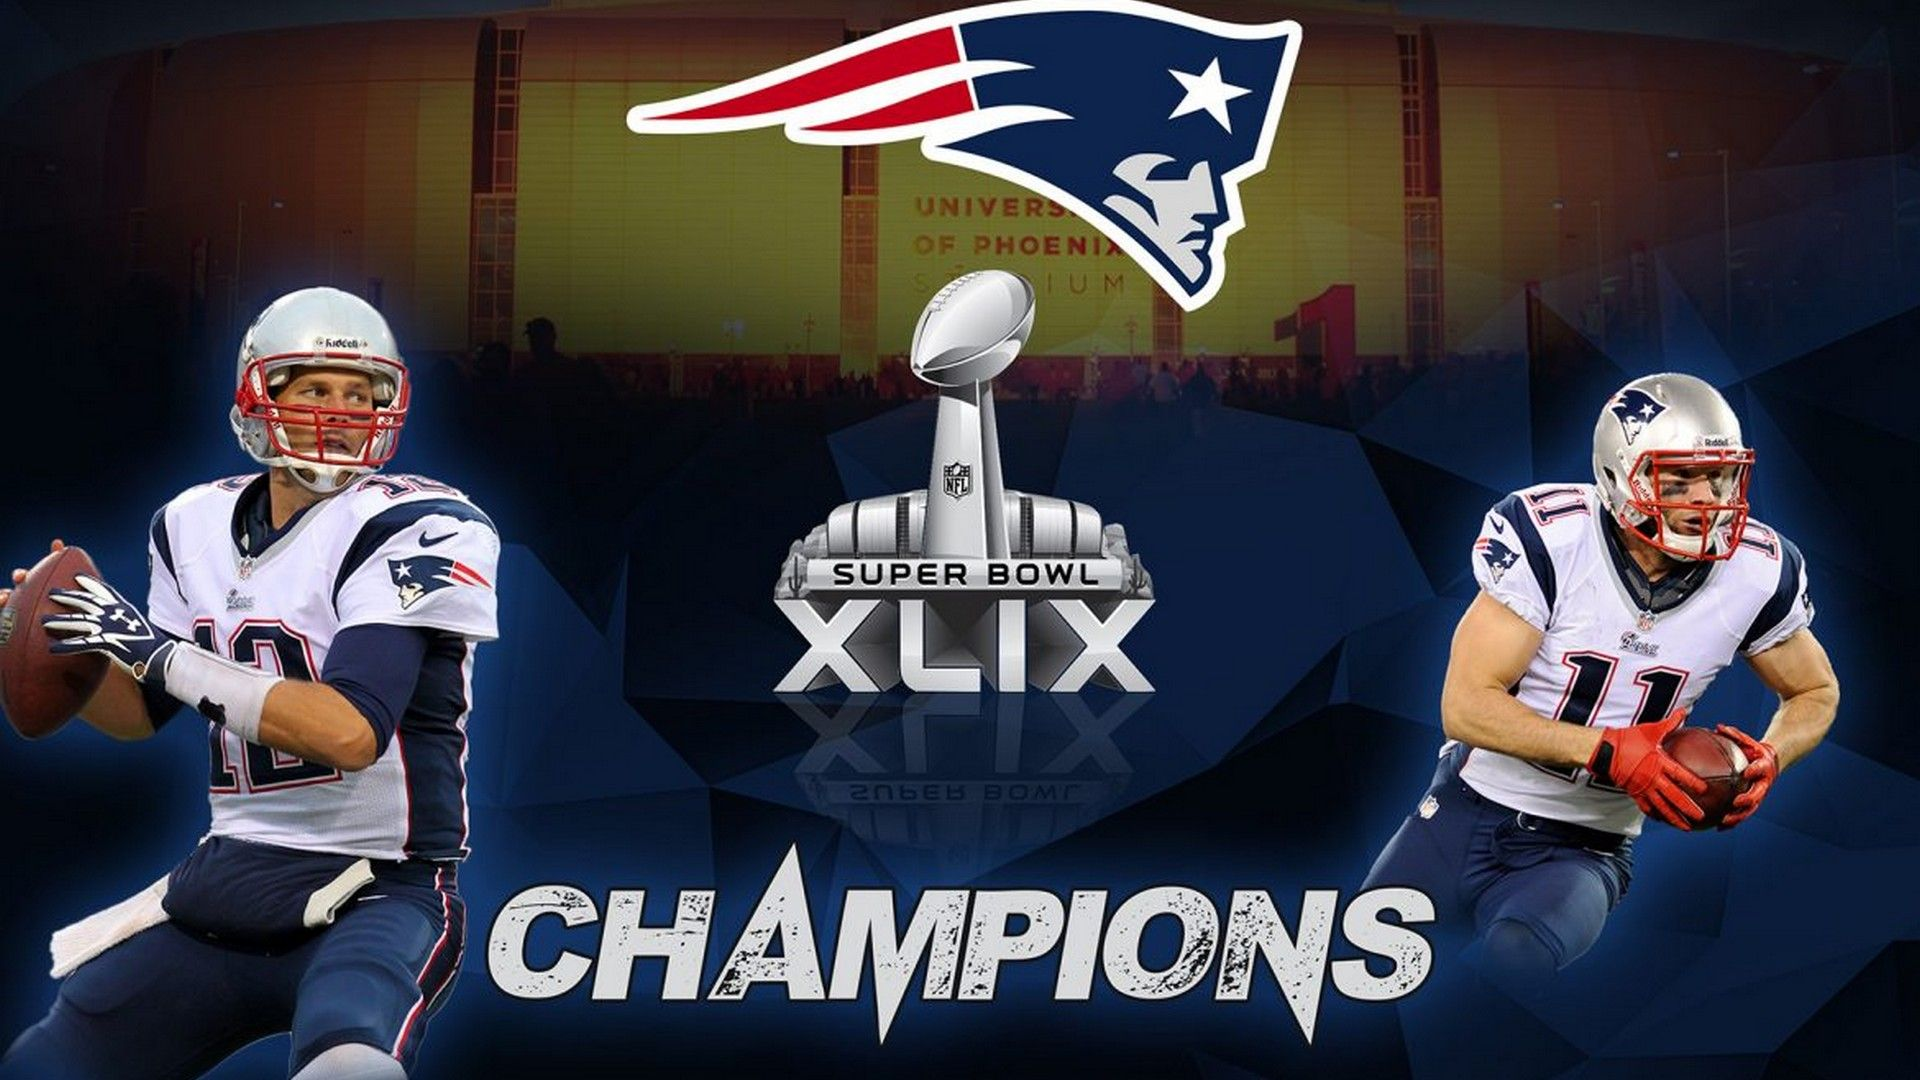 Nfl Wallpapers New England Patriots Players New England Patriots Nfl New England Patriots